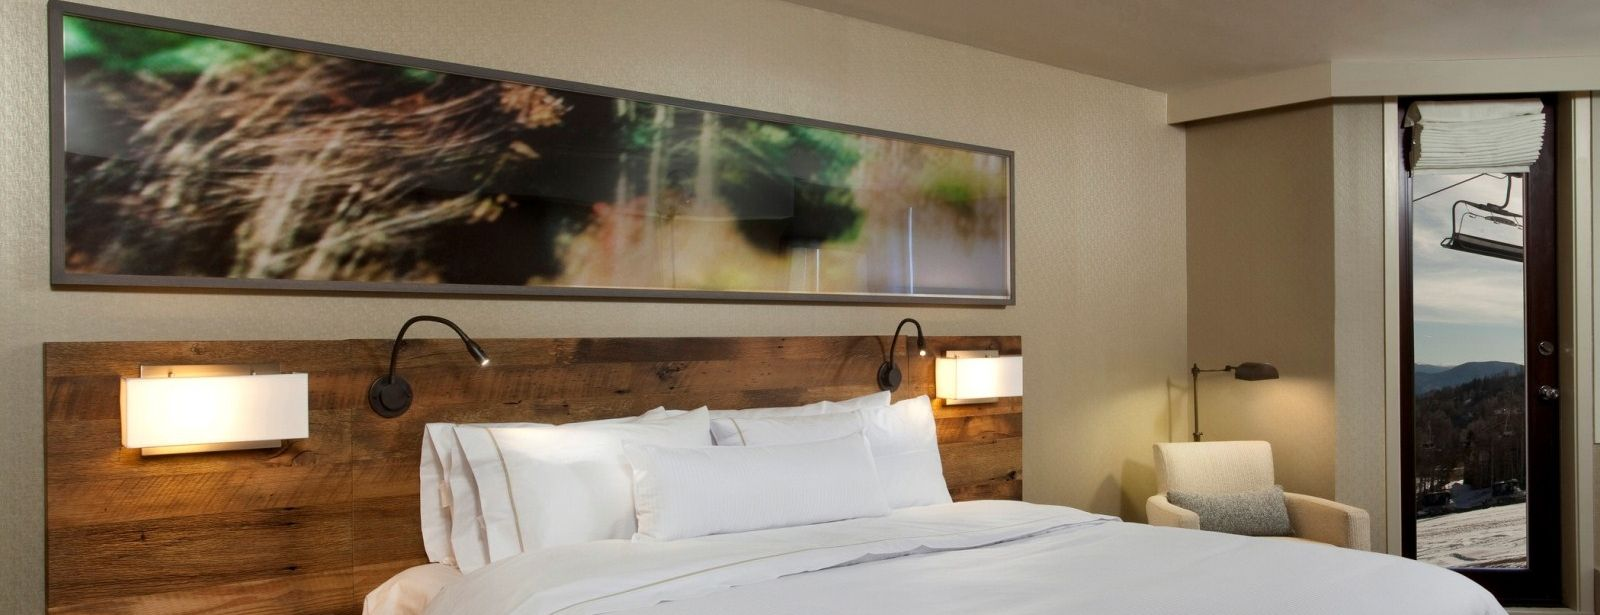 Ski Resort Hotel Rooms - The Westin Snowmass Resort